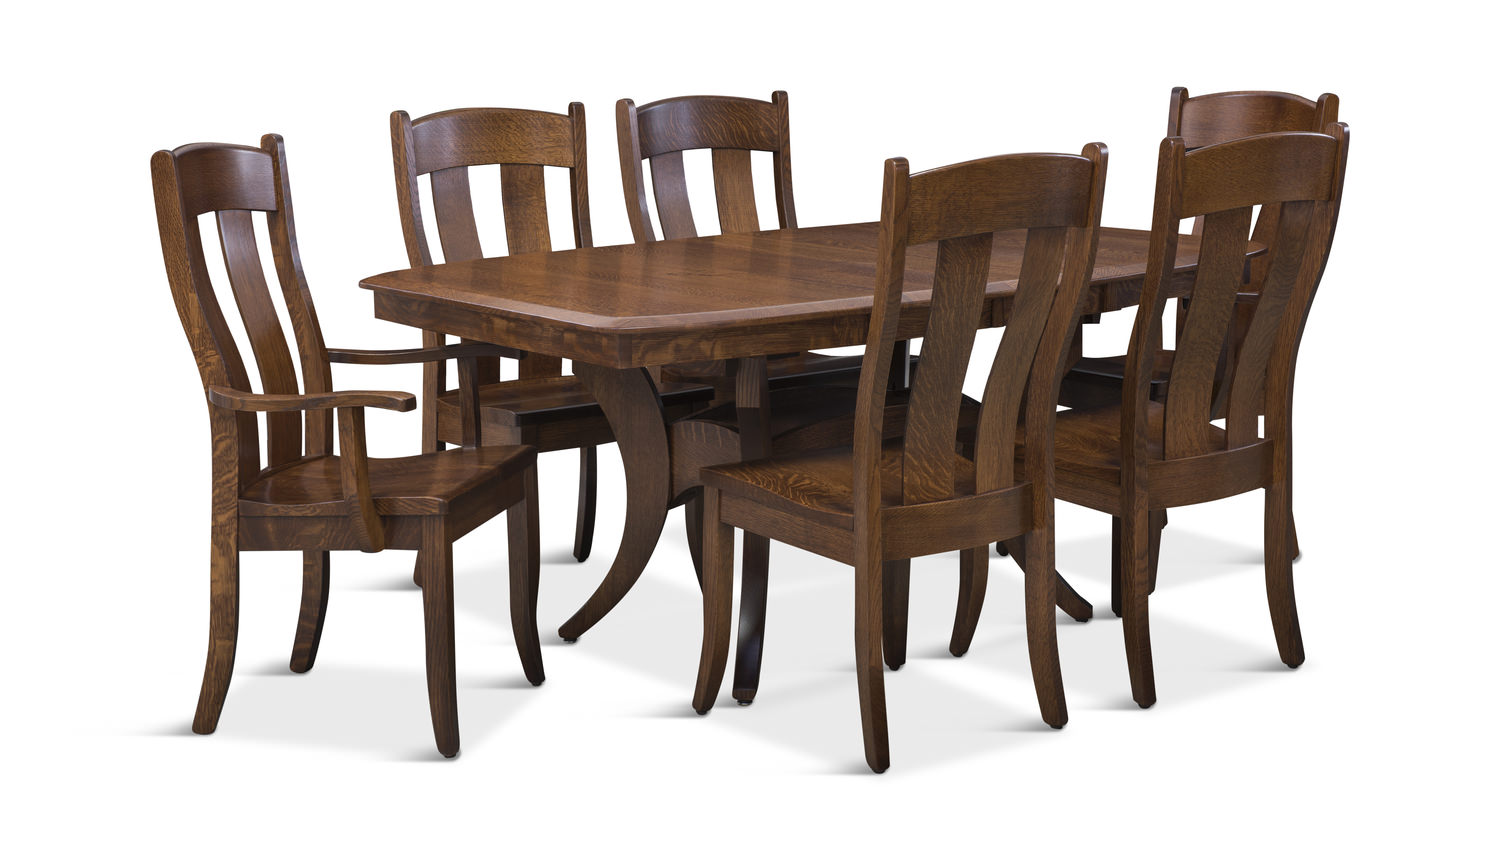 fort knox trestle table with side chairs hom furniture accent and arm uttermost tables slim couch mahogany bedside fur antique leather top end chinese style lamp shades west elm